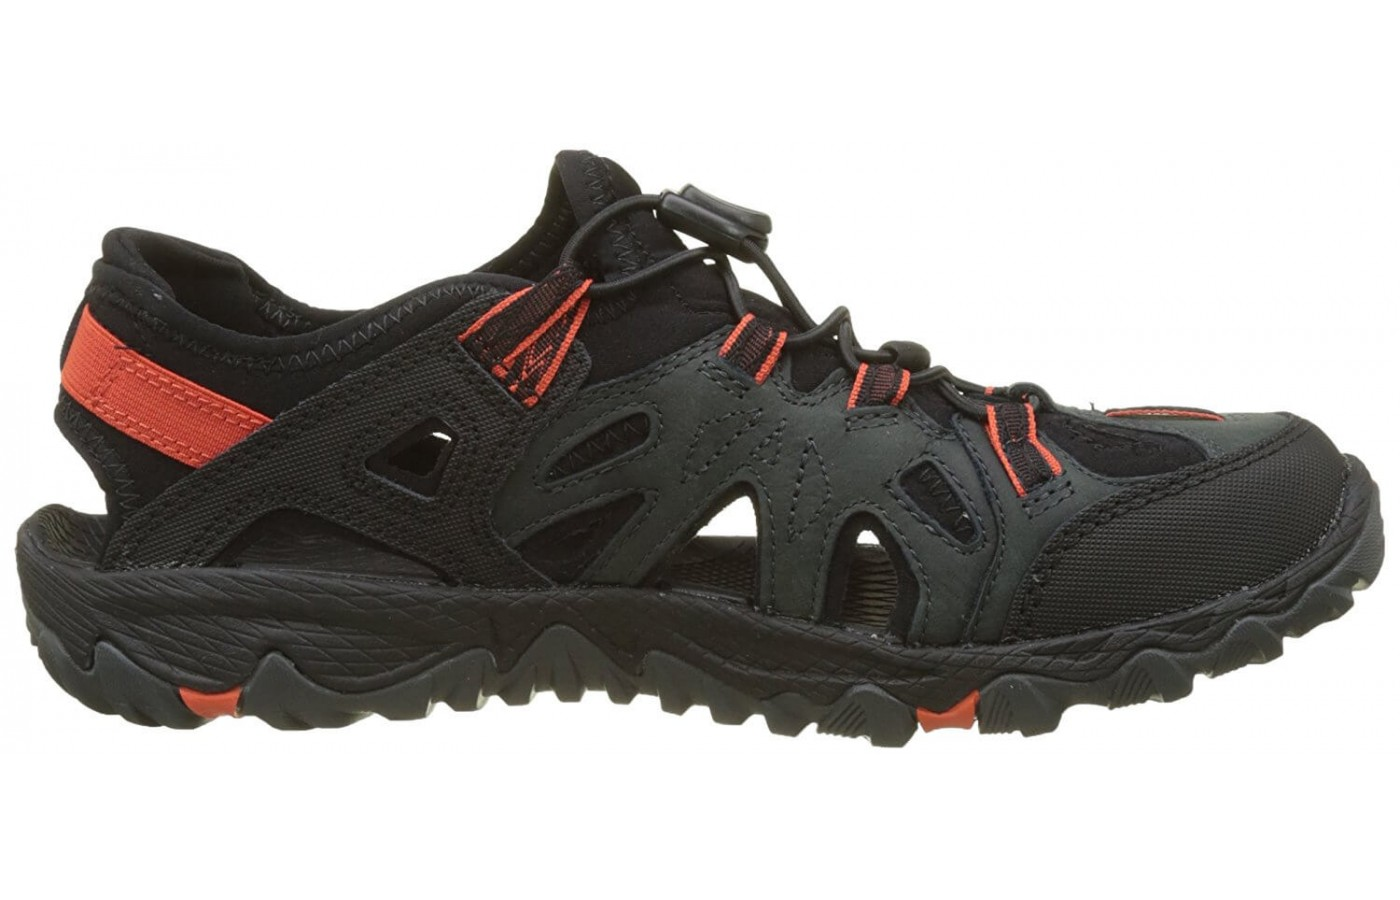 ff996e639648 ... The Merrell All Out Blaze Sieve includes a UniFly midsole for comfort  and protection out on ...